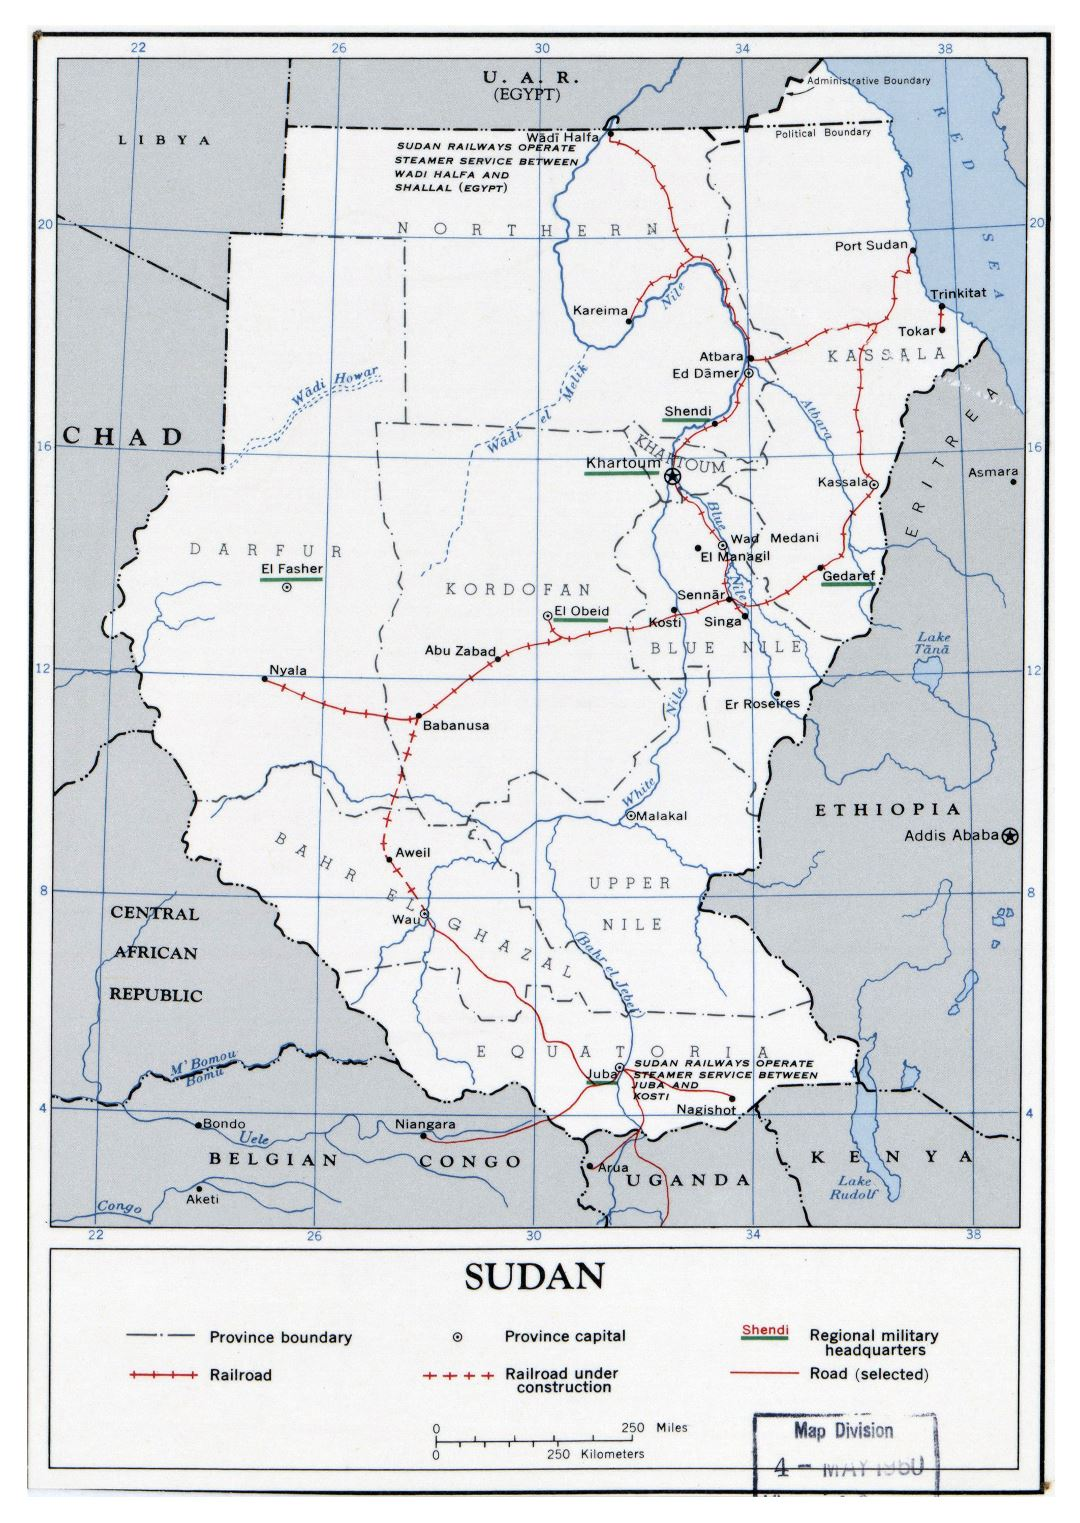 Large detailed political and administrative map of Sudan with roads, railroads and major cities - 1960